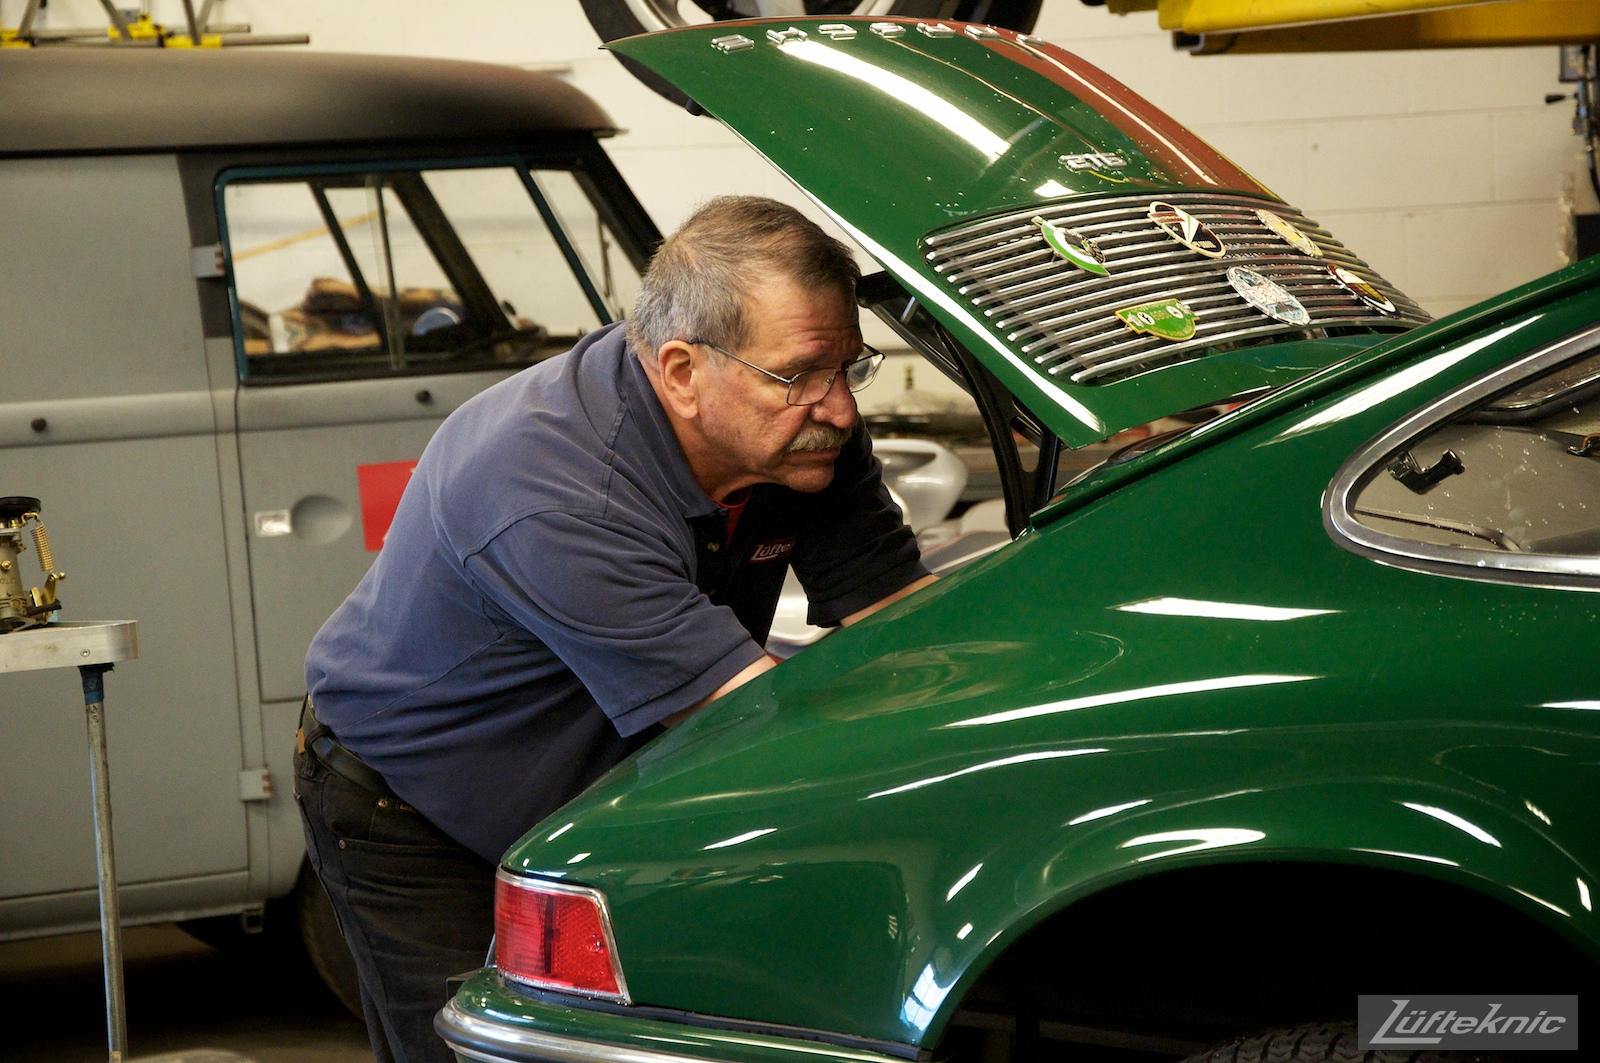 A Lufteknic employee working on the engine in a green Porsche 912.